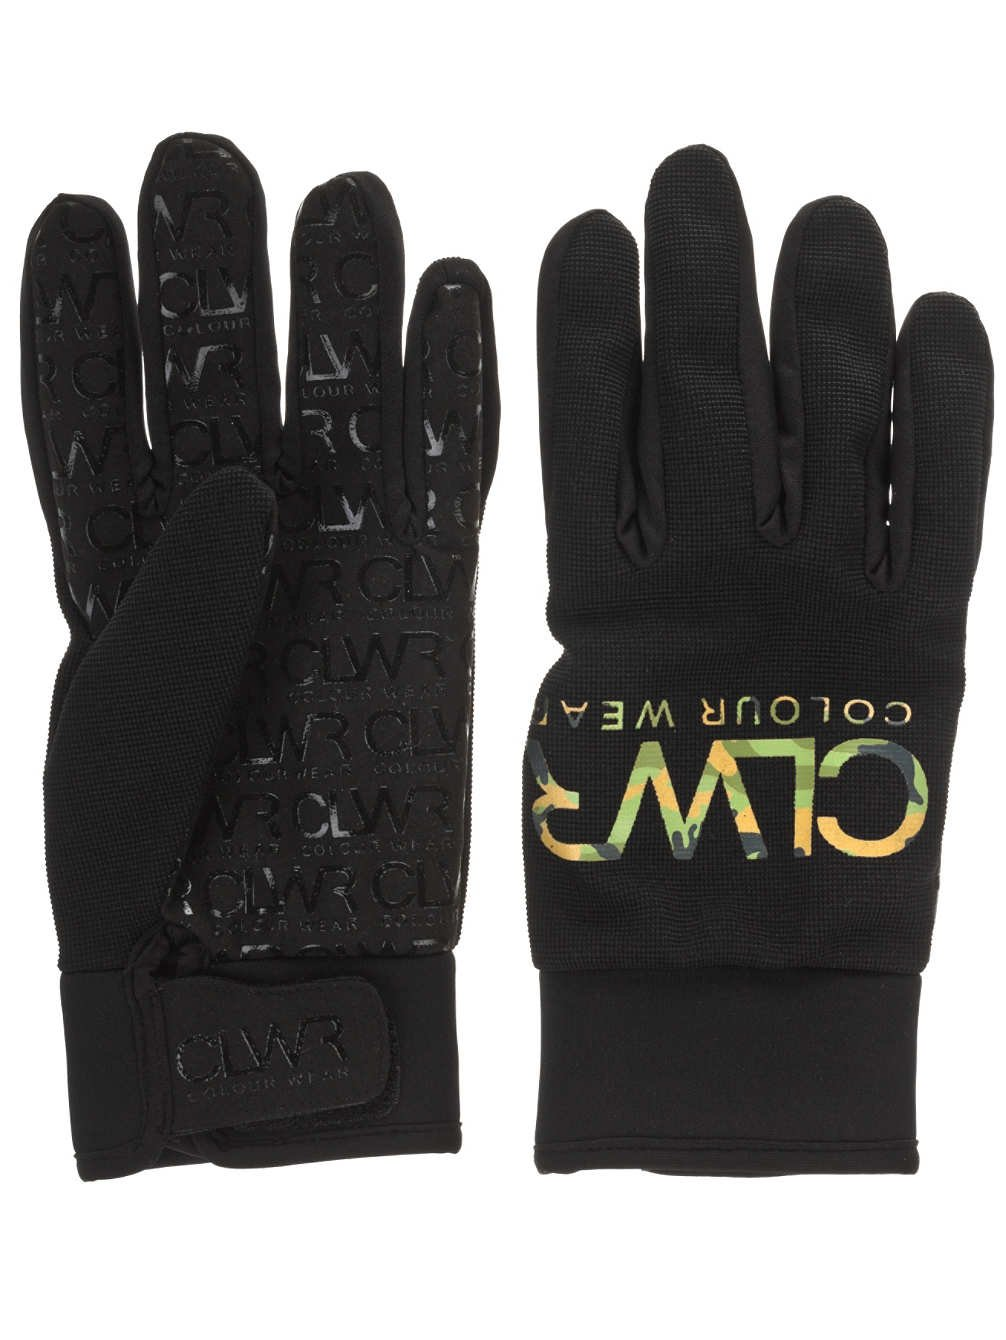 цена  Colour Wear CLWR Gloves Mens Unisex Ski Snowboard Winter New 2015  онлайн в 2017 году